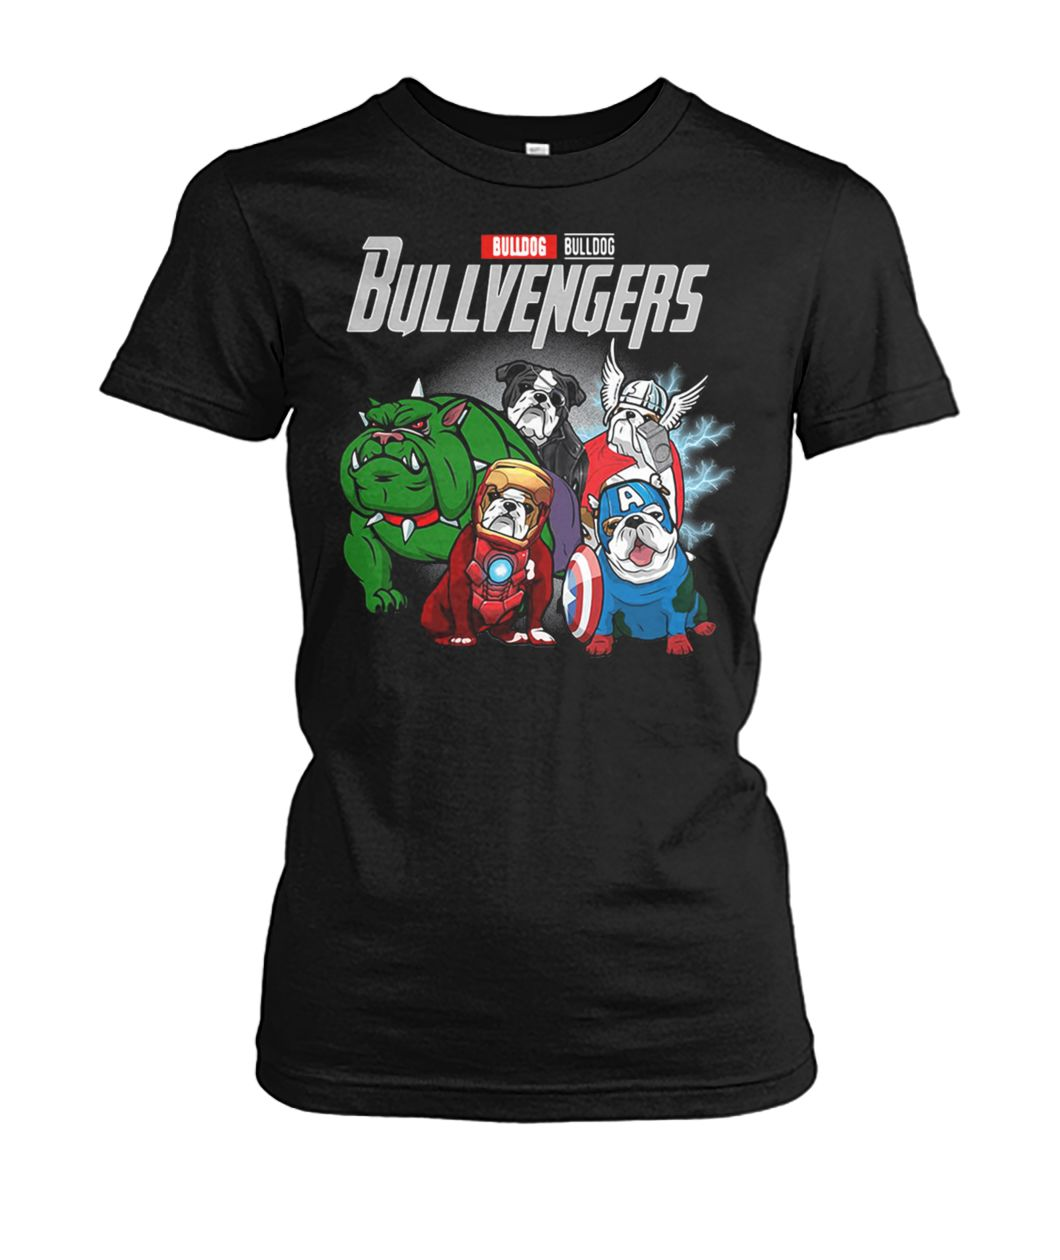 [Hot version] Marvel avengers endgame bullvengers bulldog shirt